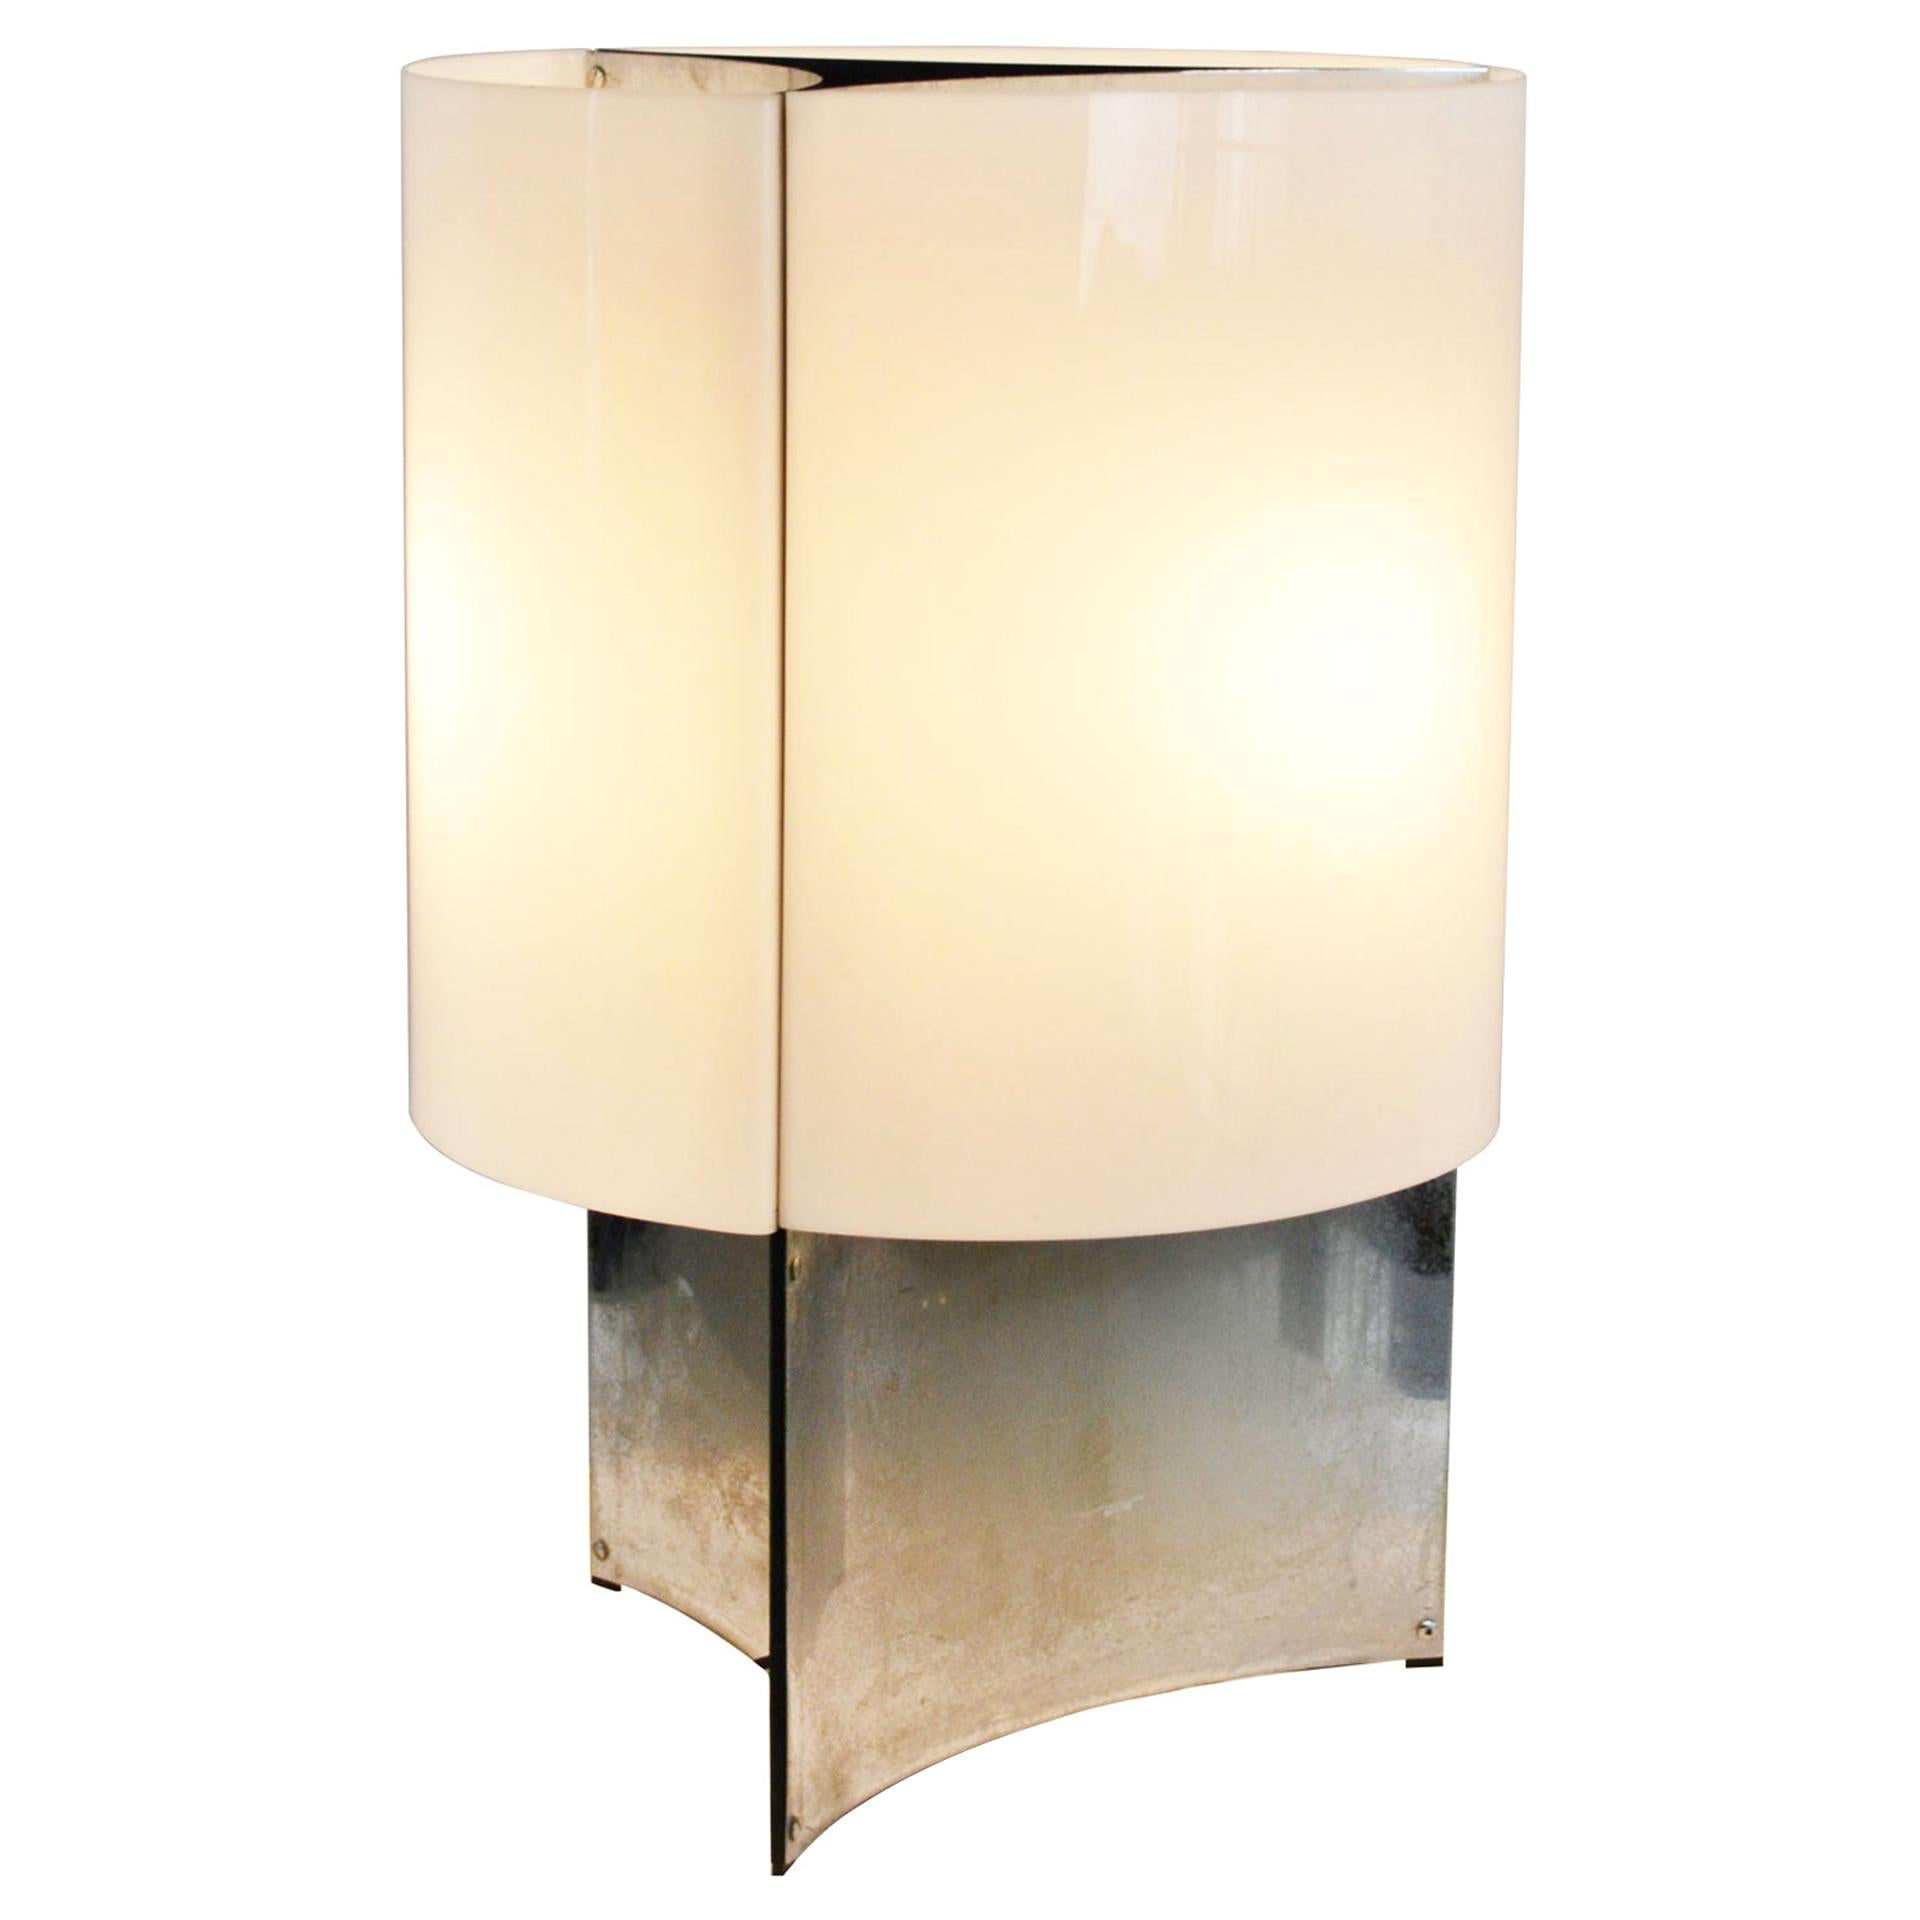 20th Century Massimo Vignelli Table Lamp 526 G for Arteluce in Metal and Perspex